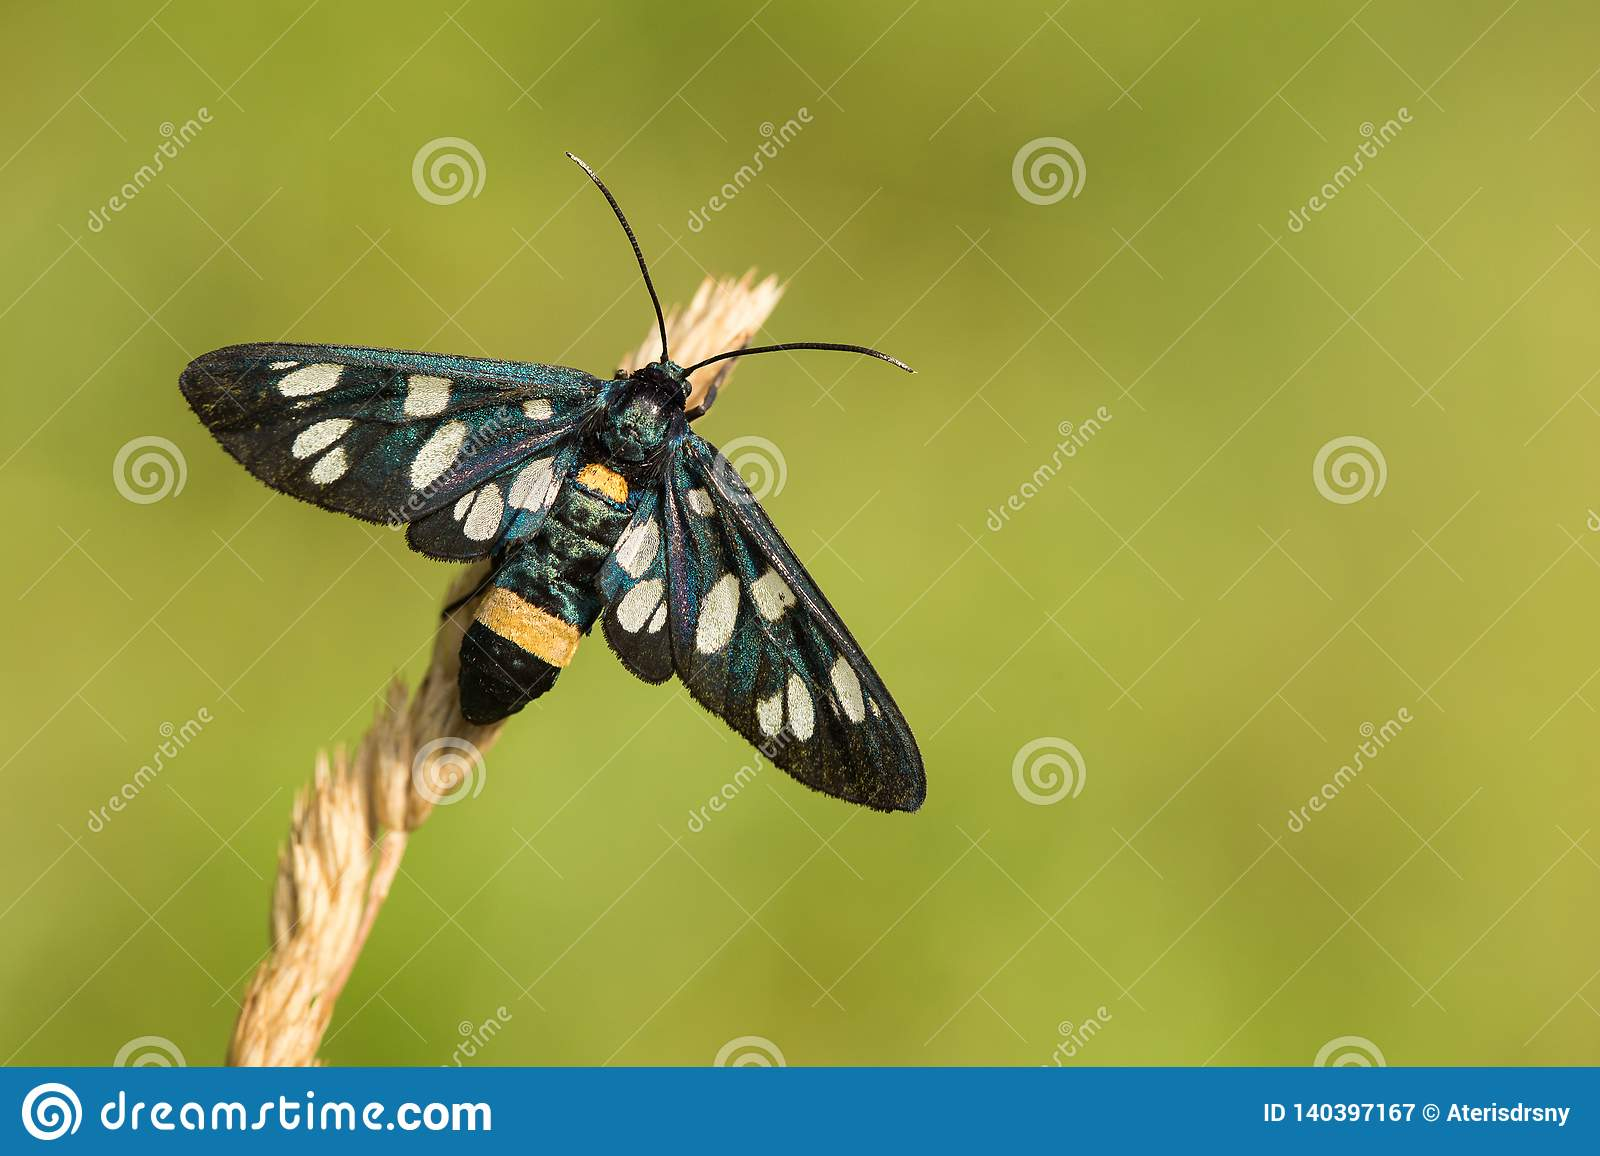 Nine-spotted moth or yellow belted burnet, Amata phegea, formerly Syntomis phegea, in Czech Republic